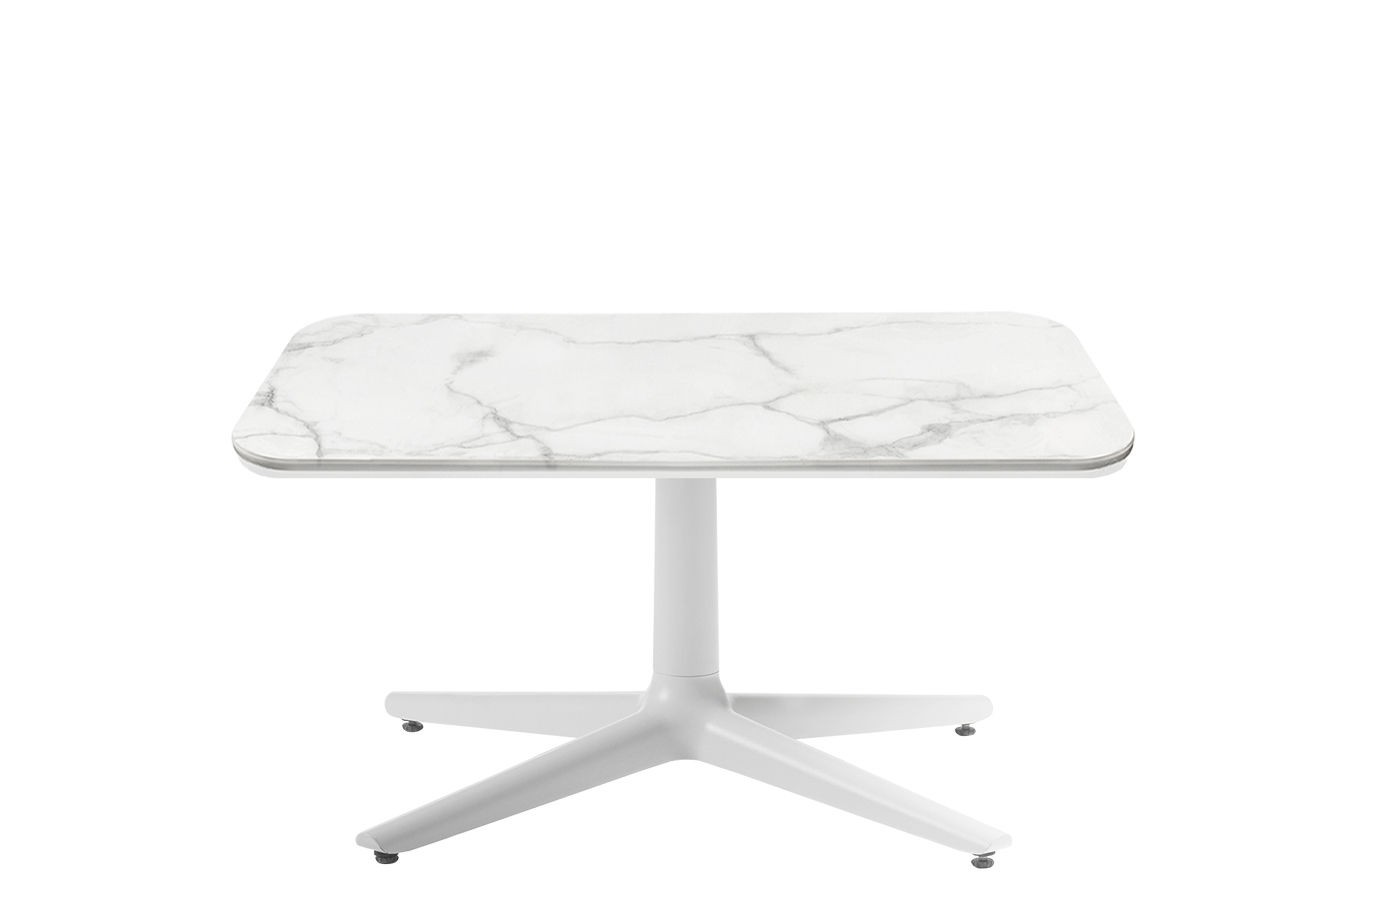 Furniture - Coffee Tables - Multiplo indoor/outdoor - Coffee table - / Marble effect - 99 x 99 cm by Kartell - White - Stoneware with marble effect, Varnished aluminium